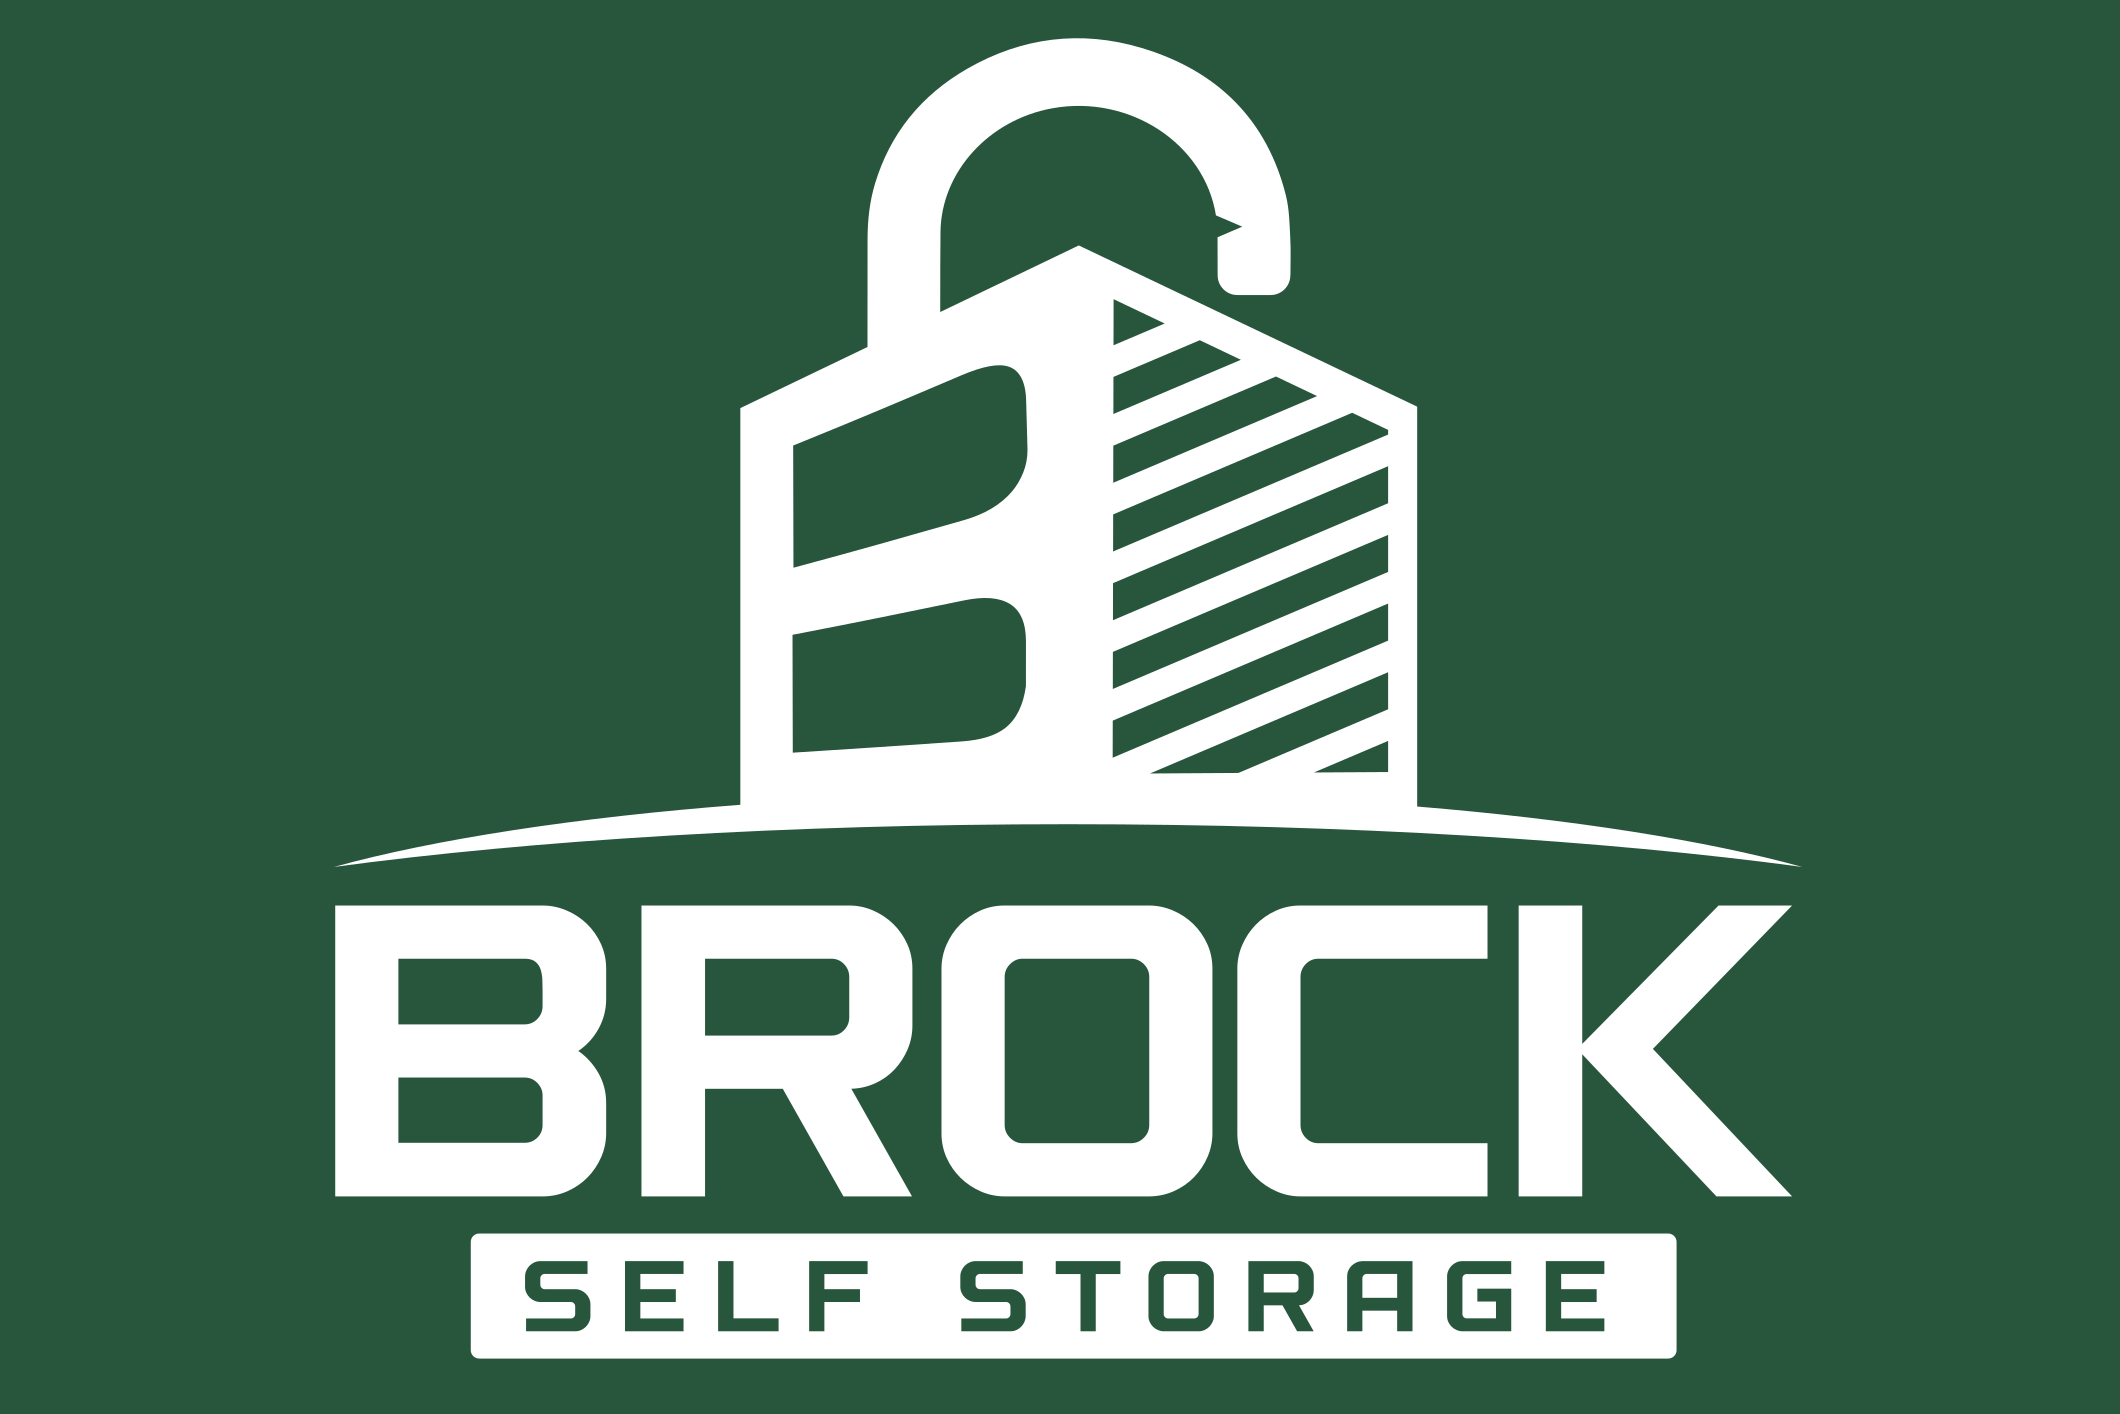 Brock Self Storage